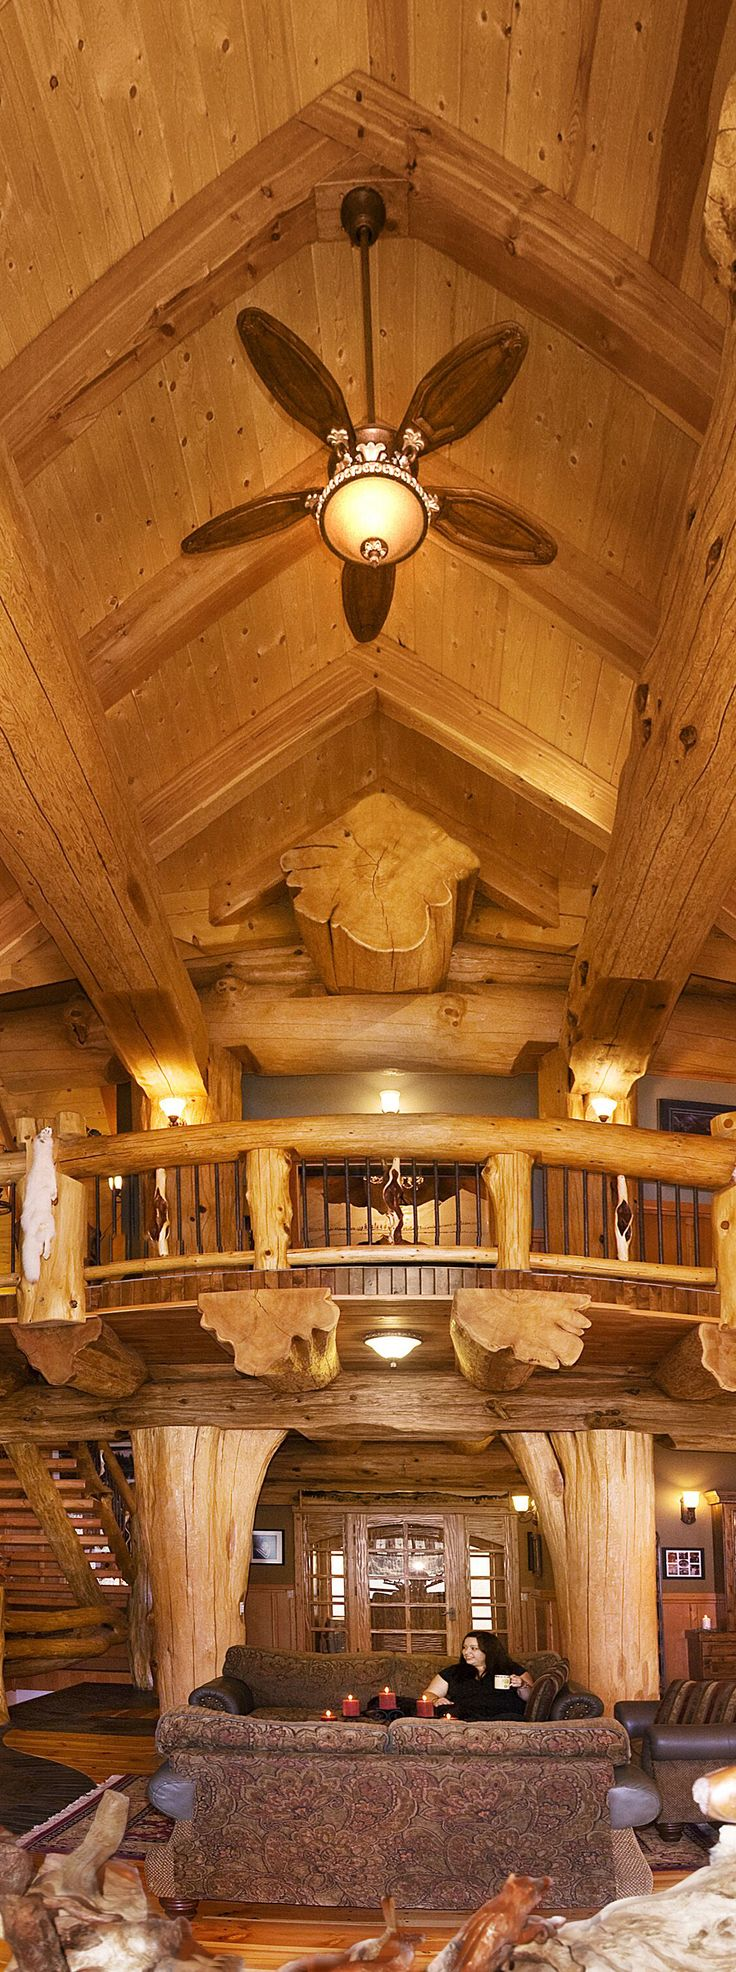 Log home built by Pioneer log homes of BC